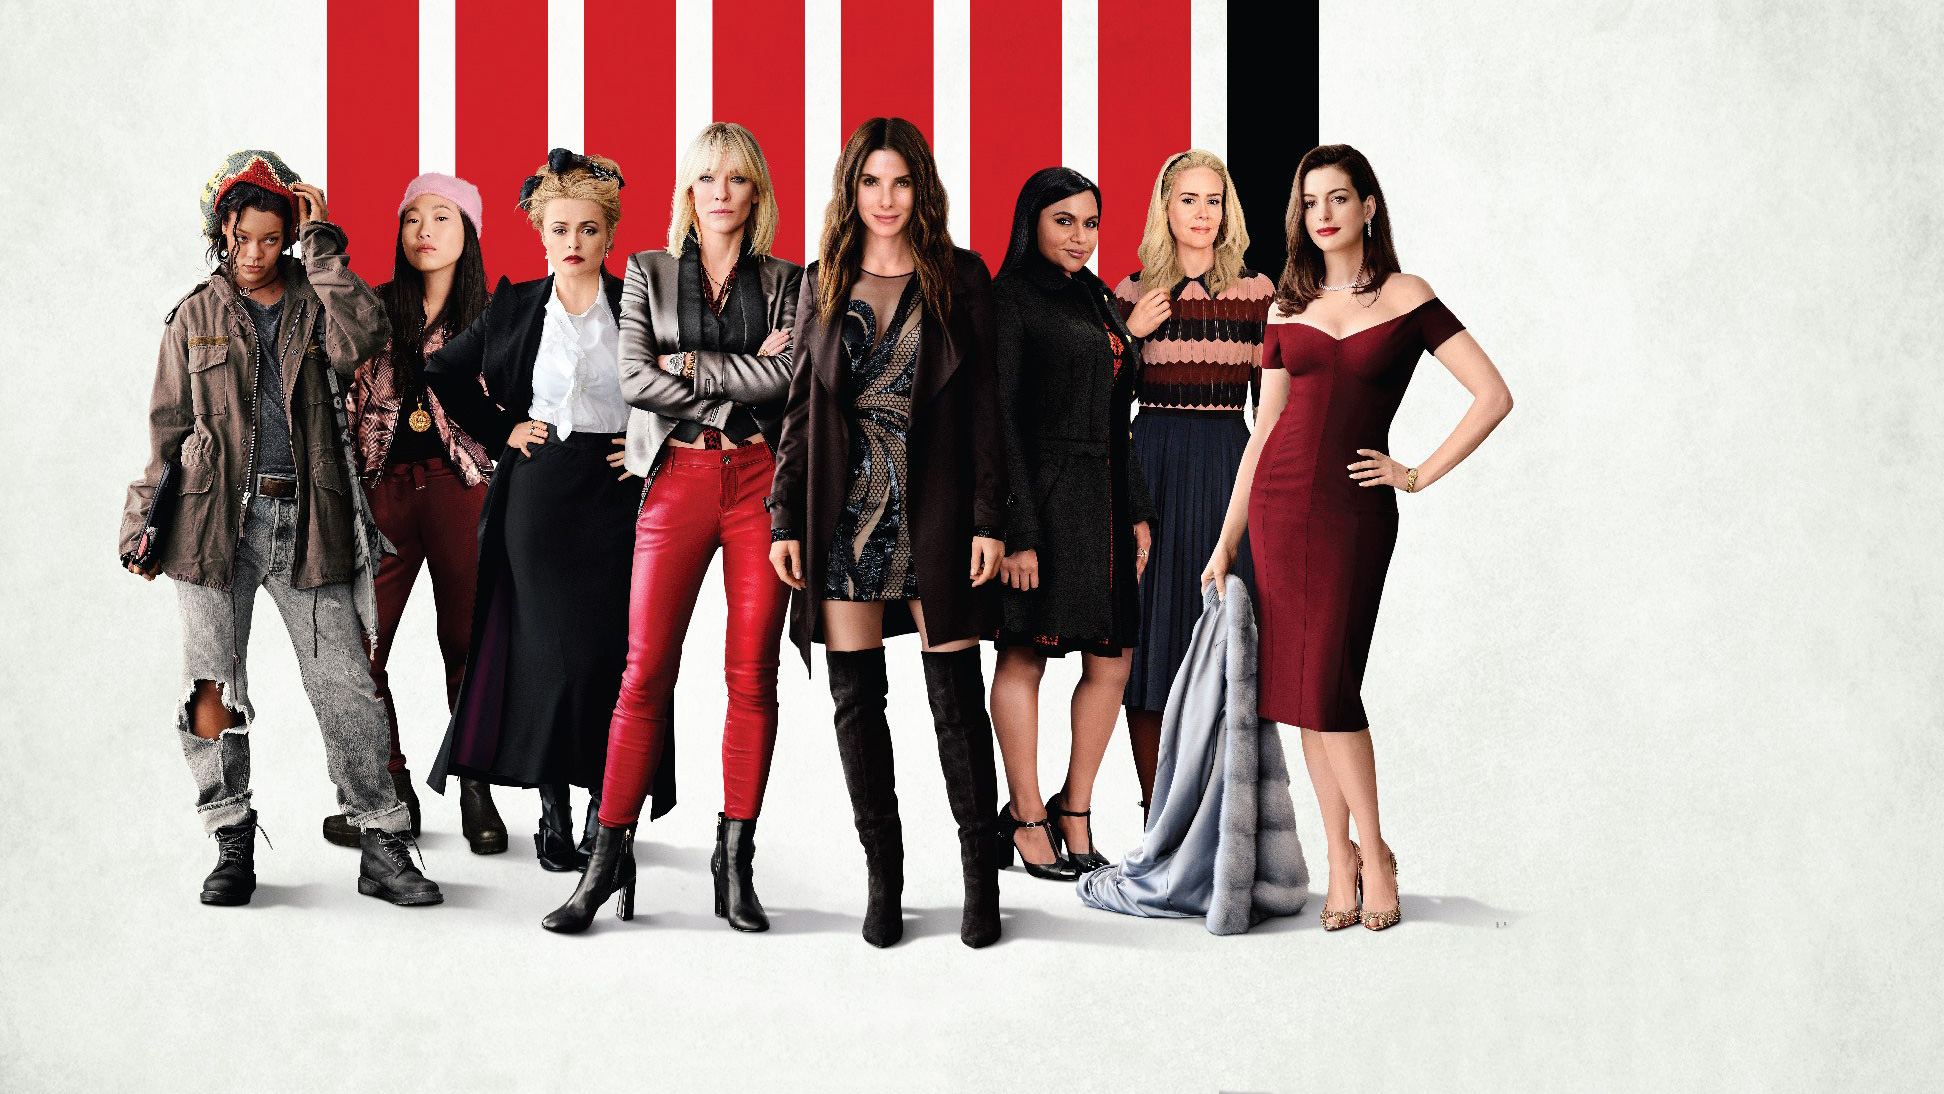 Cute Iphone Wallpapers For Girls Oceans 8 Movie Hong Kong Poster Hd Movies 4k Wallpapers